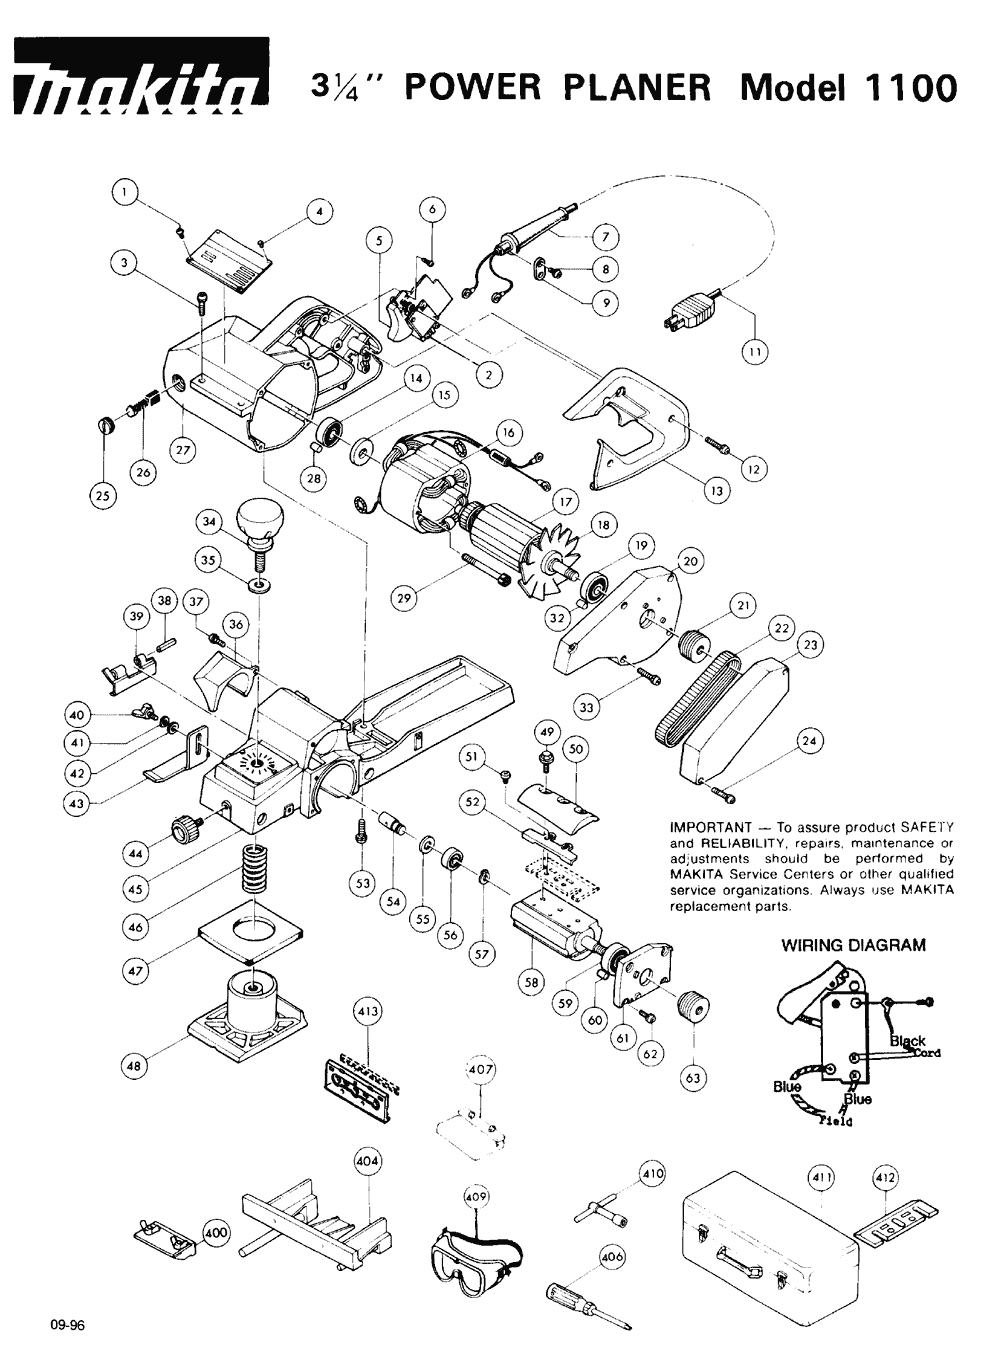 hight resolution of makita 1100 parts schematic